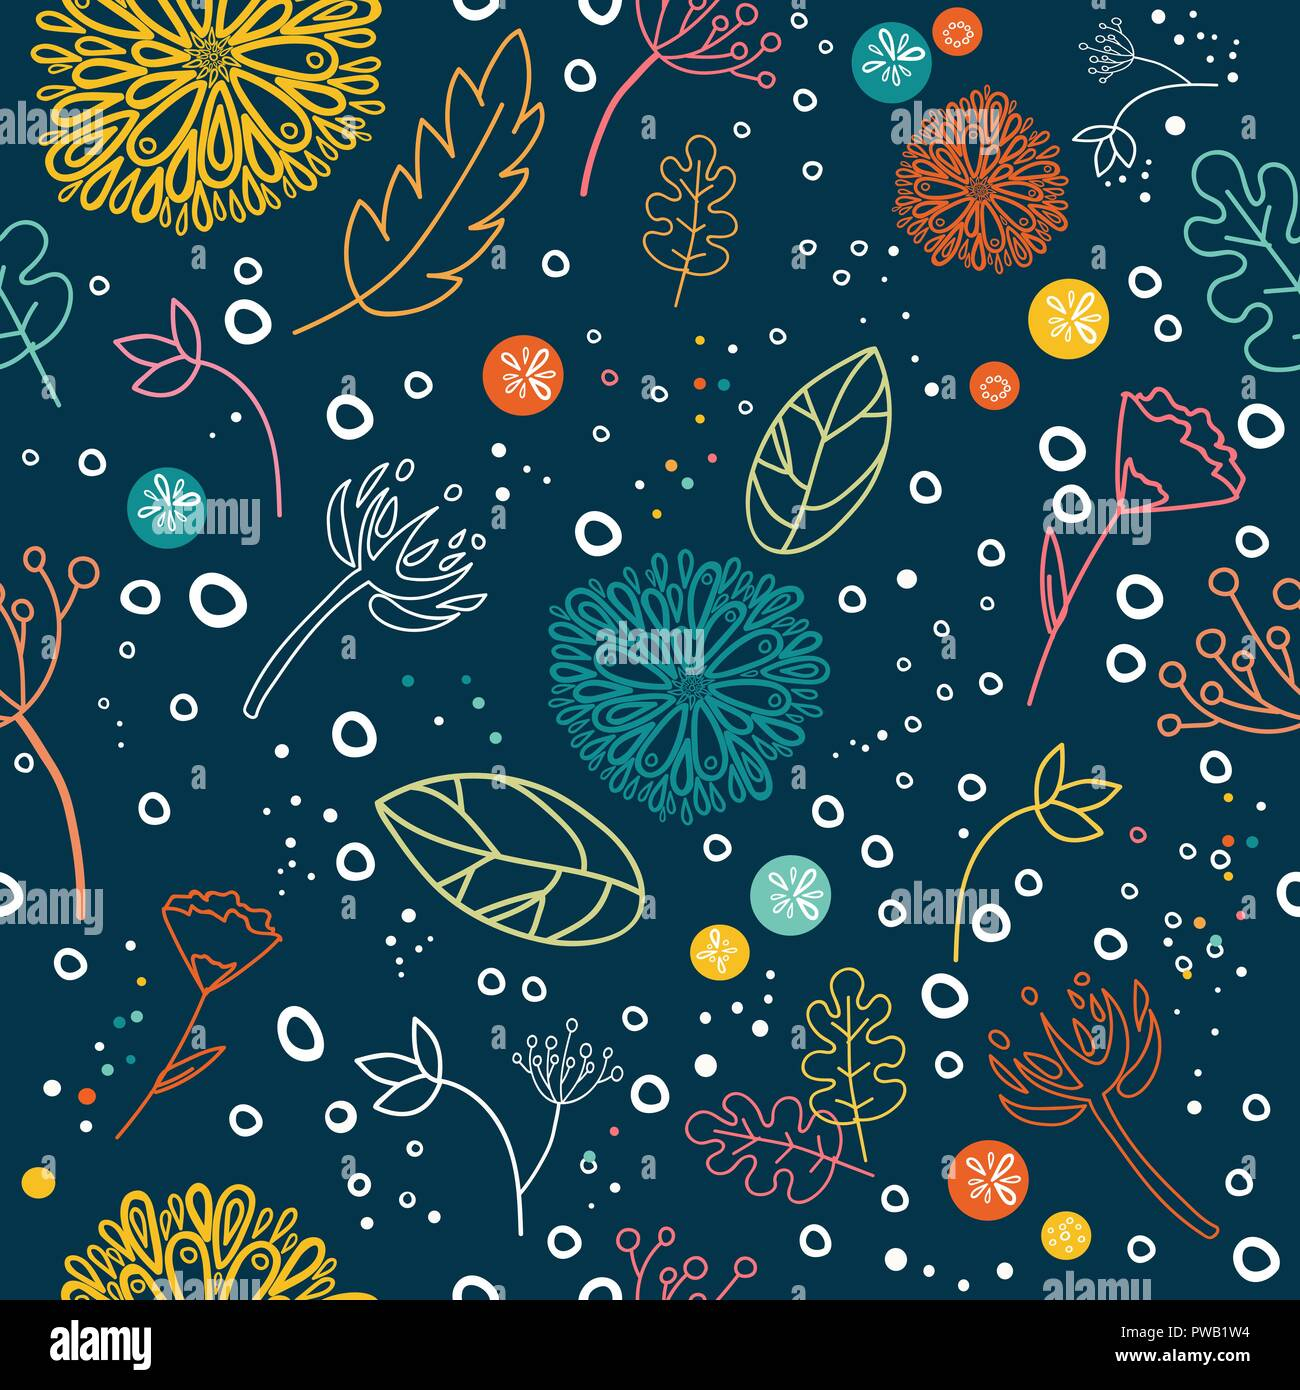 Floral seamless pattern. Colorful ornamental botanical elements. Cartoon decorative flowers seamless background. - Stock Vector